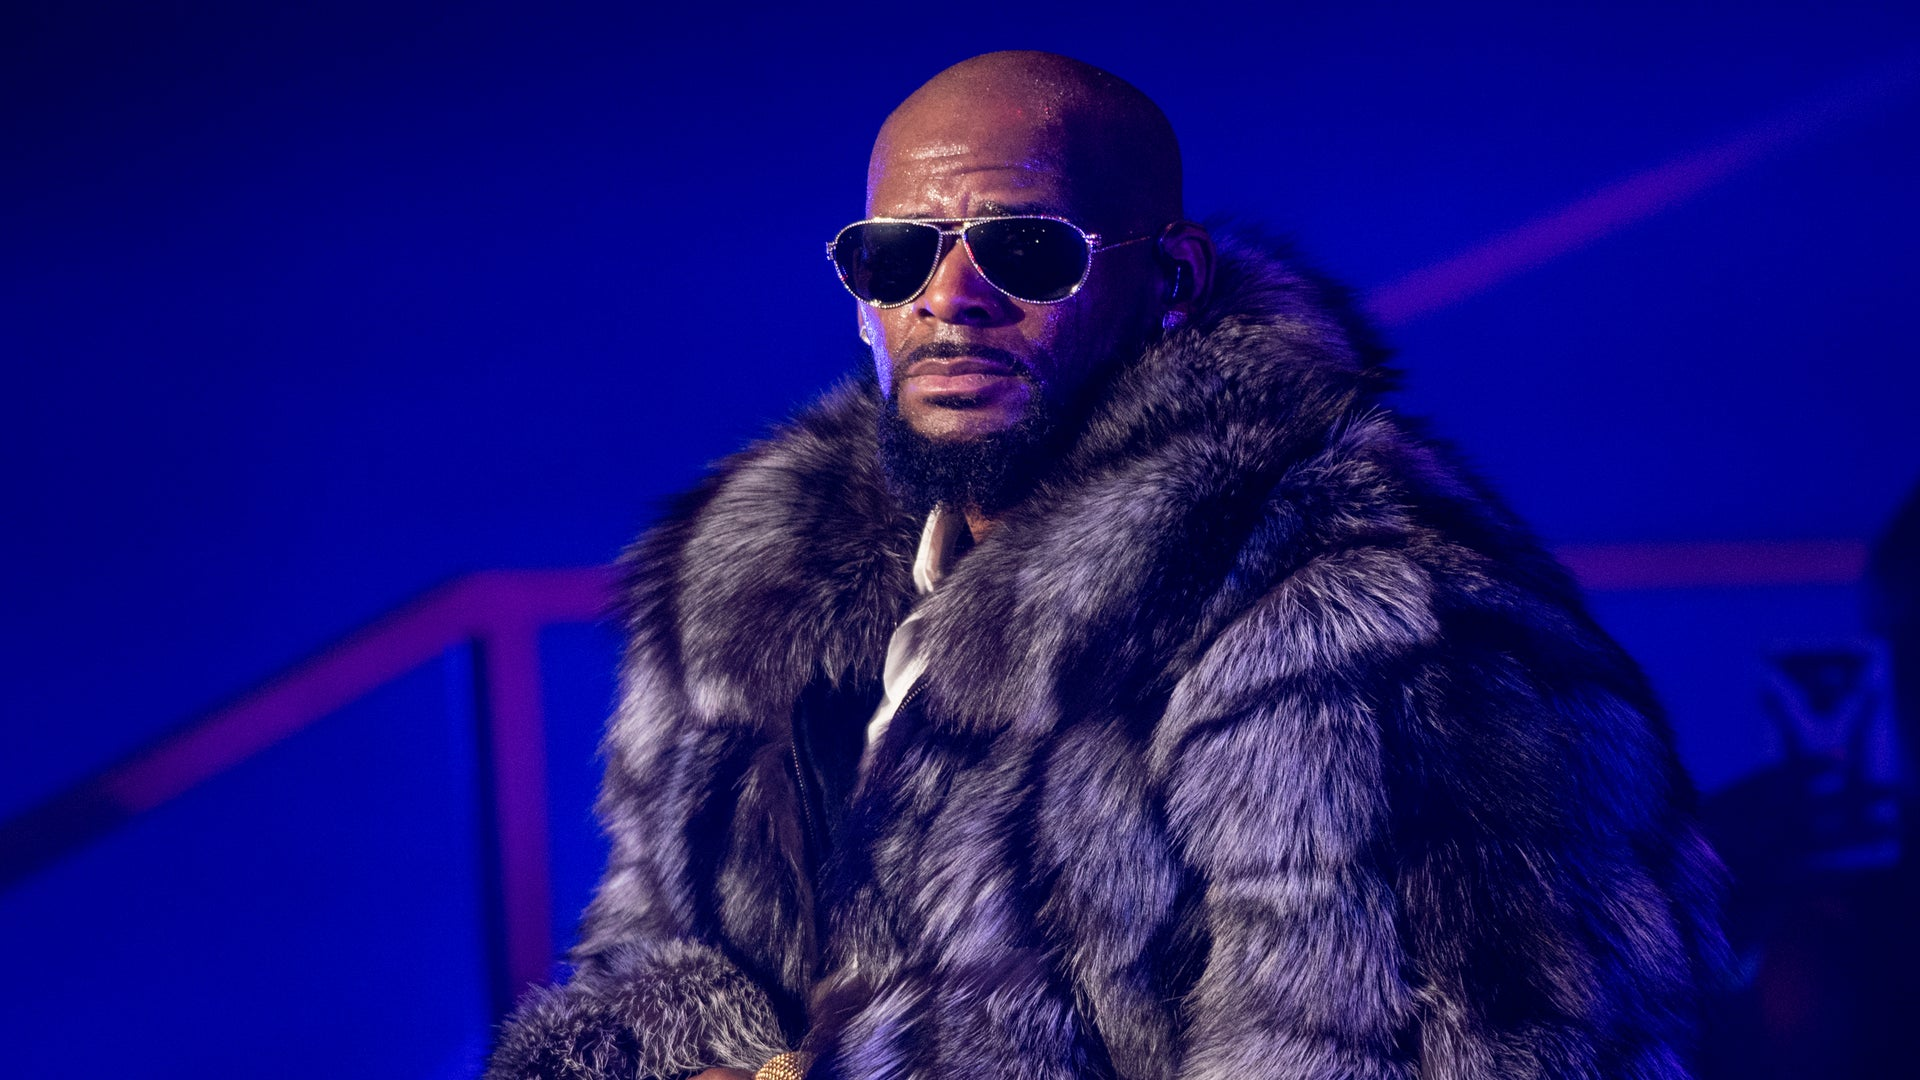 R. Kelly Set To Perform At NYC's Madison Square Garden In September